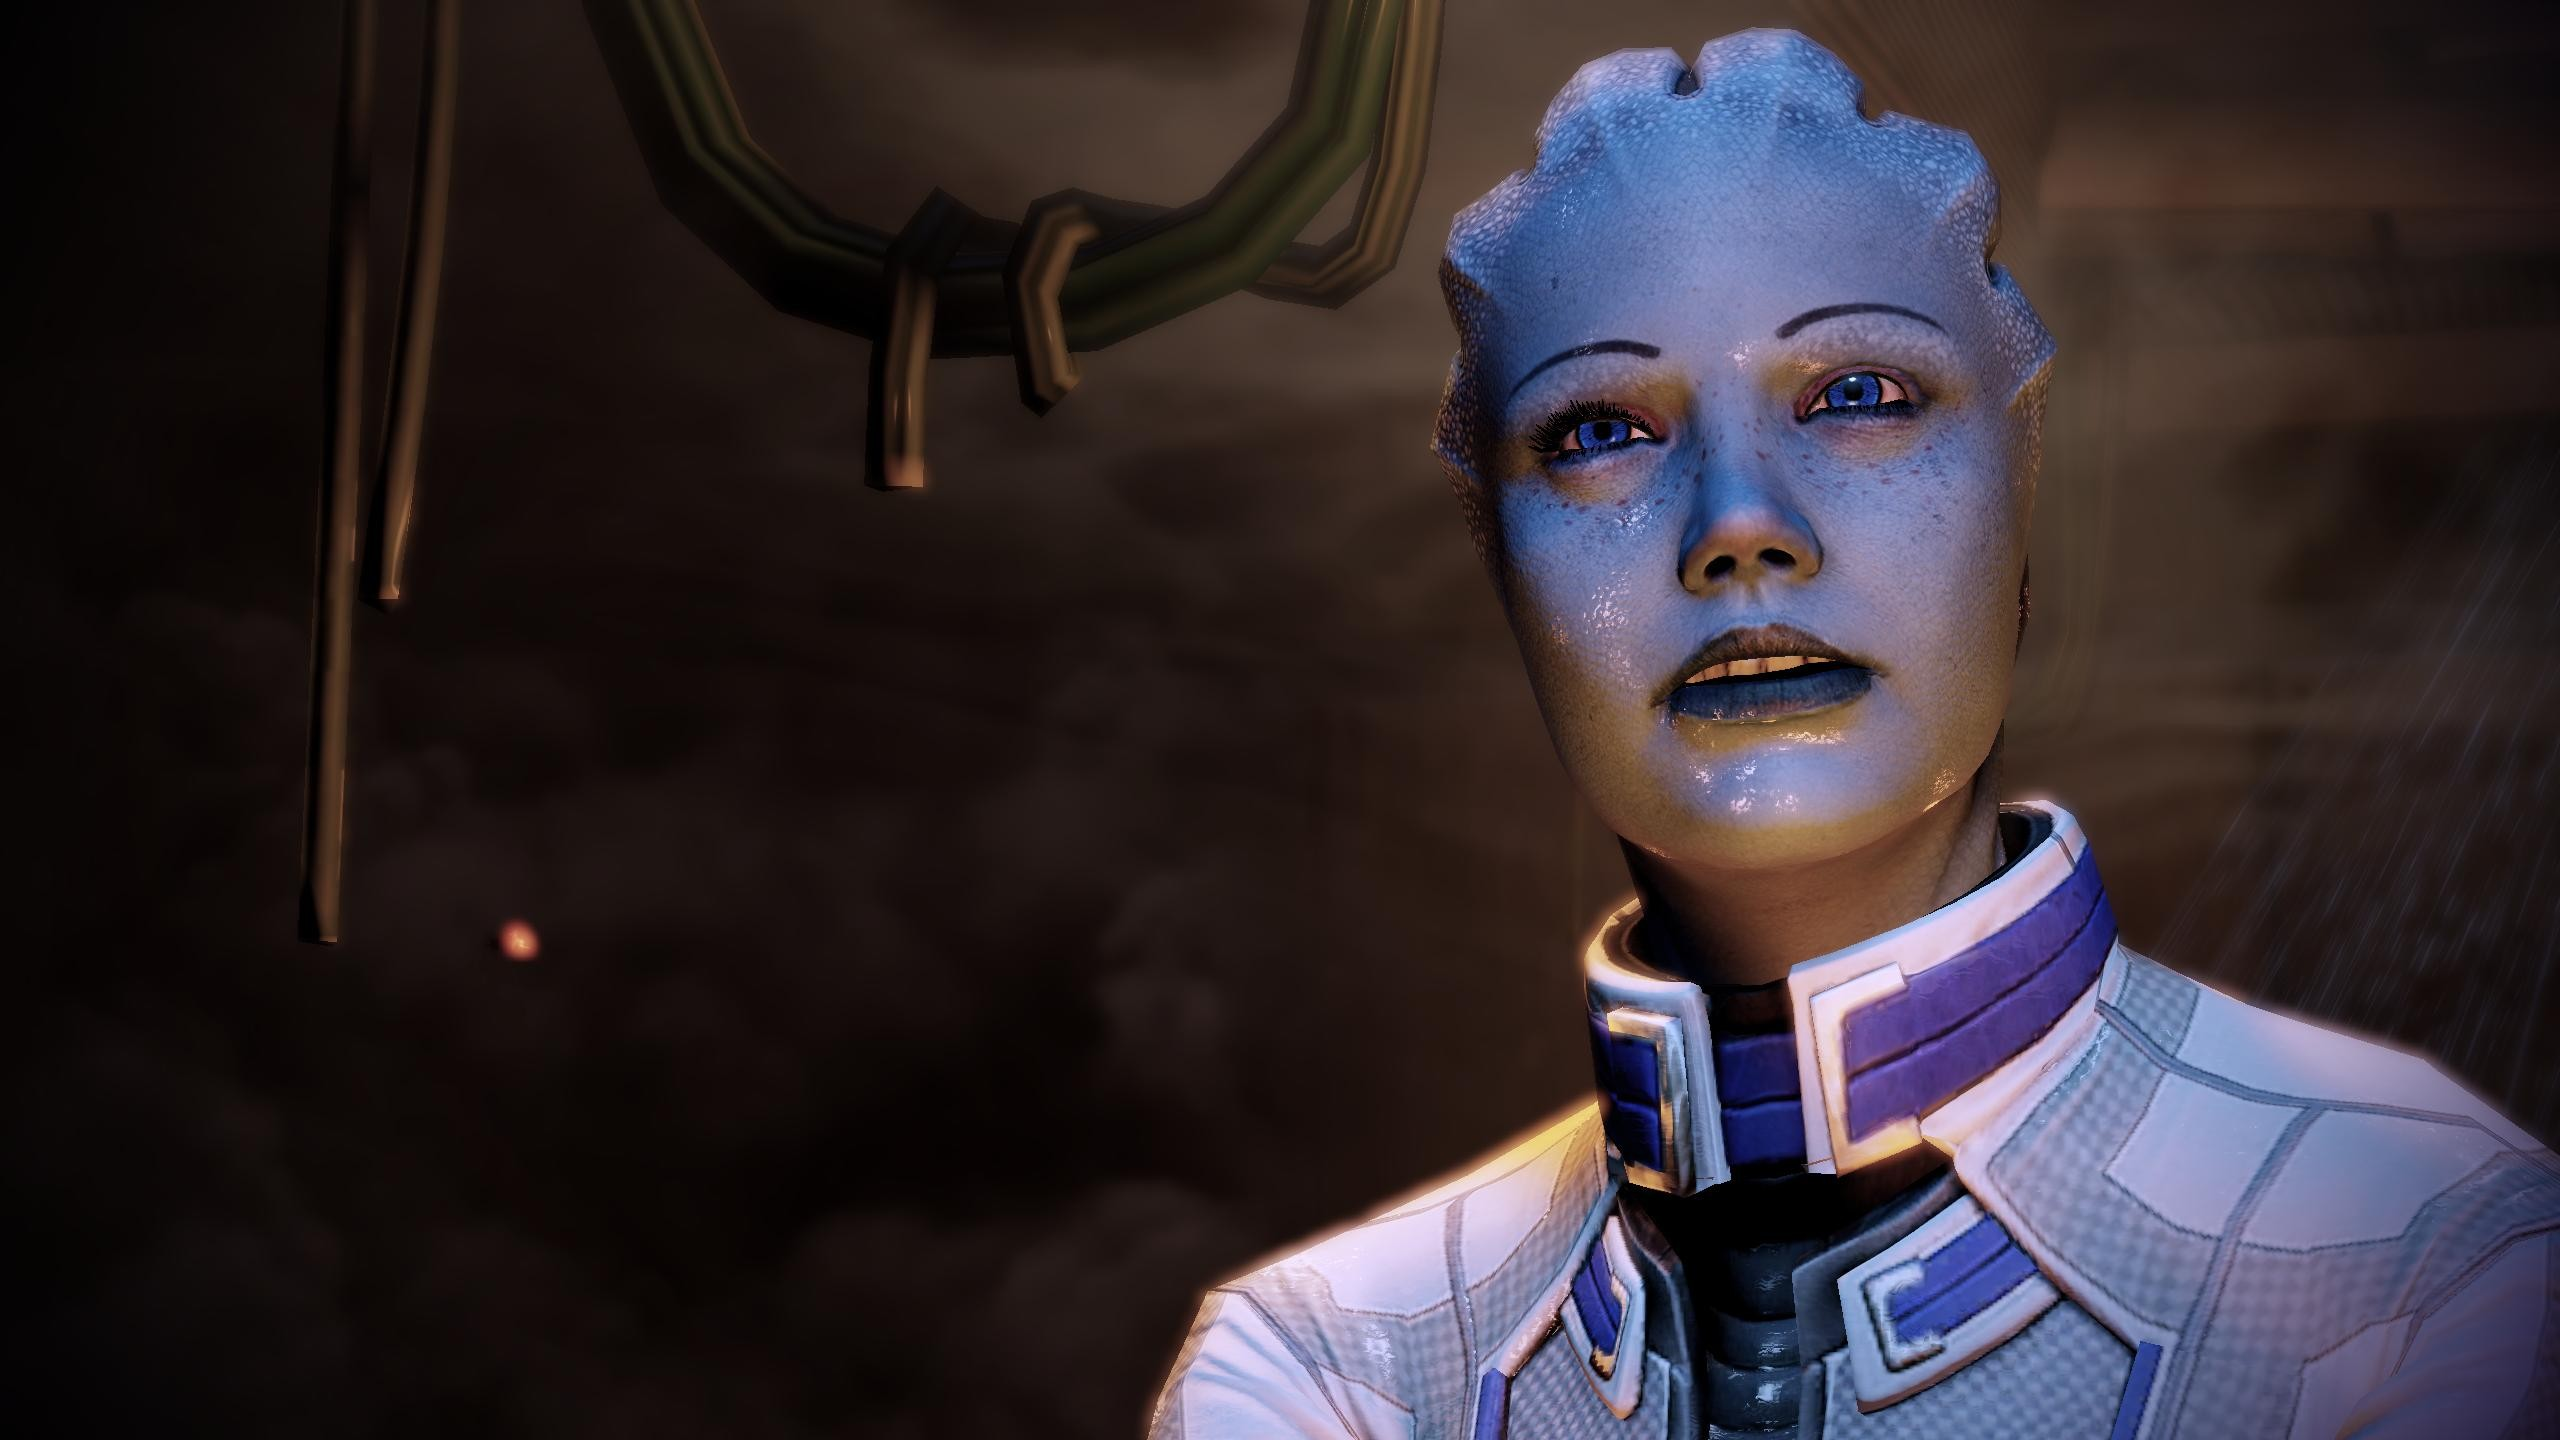 Liara mass effect babe pics smut photos